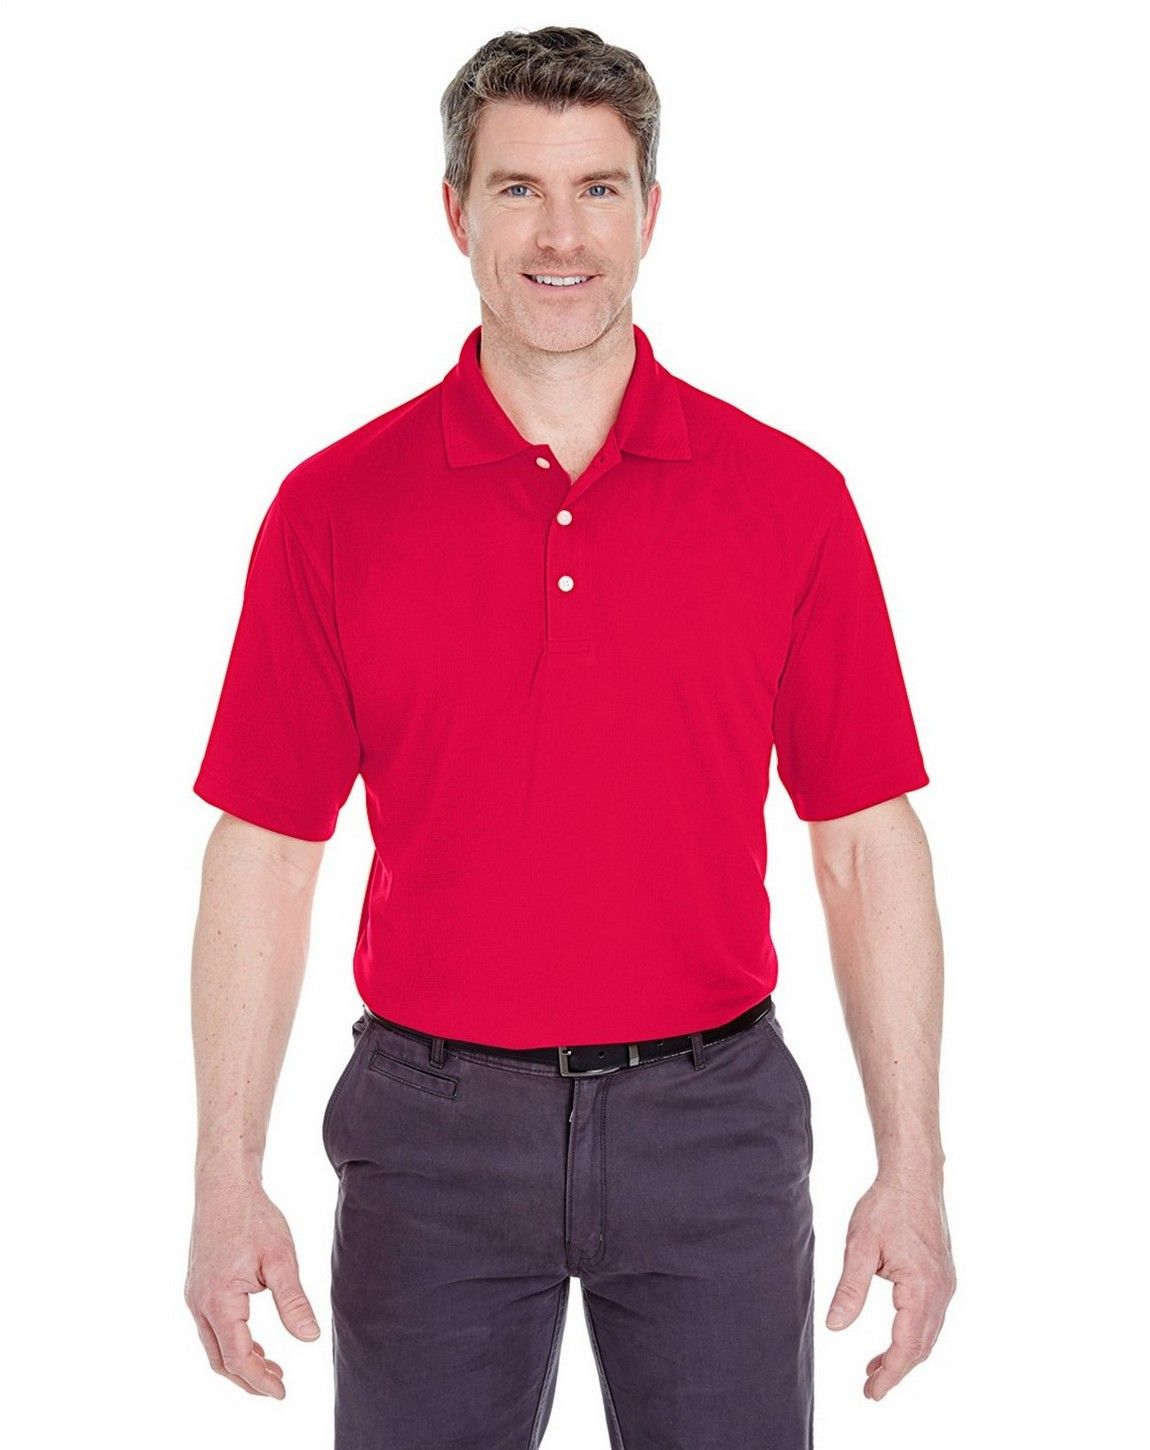 UltraClub 8445 Mens Cool Dry Stain-Release Performance Polo